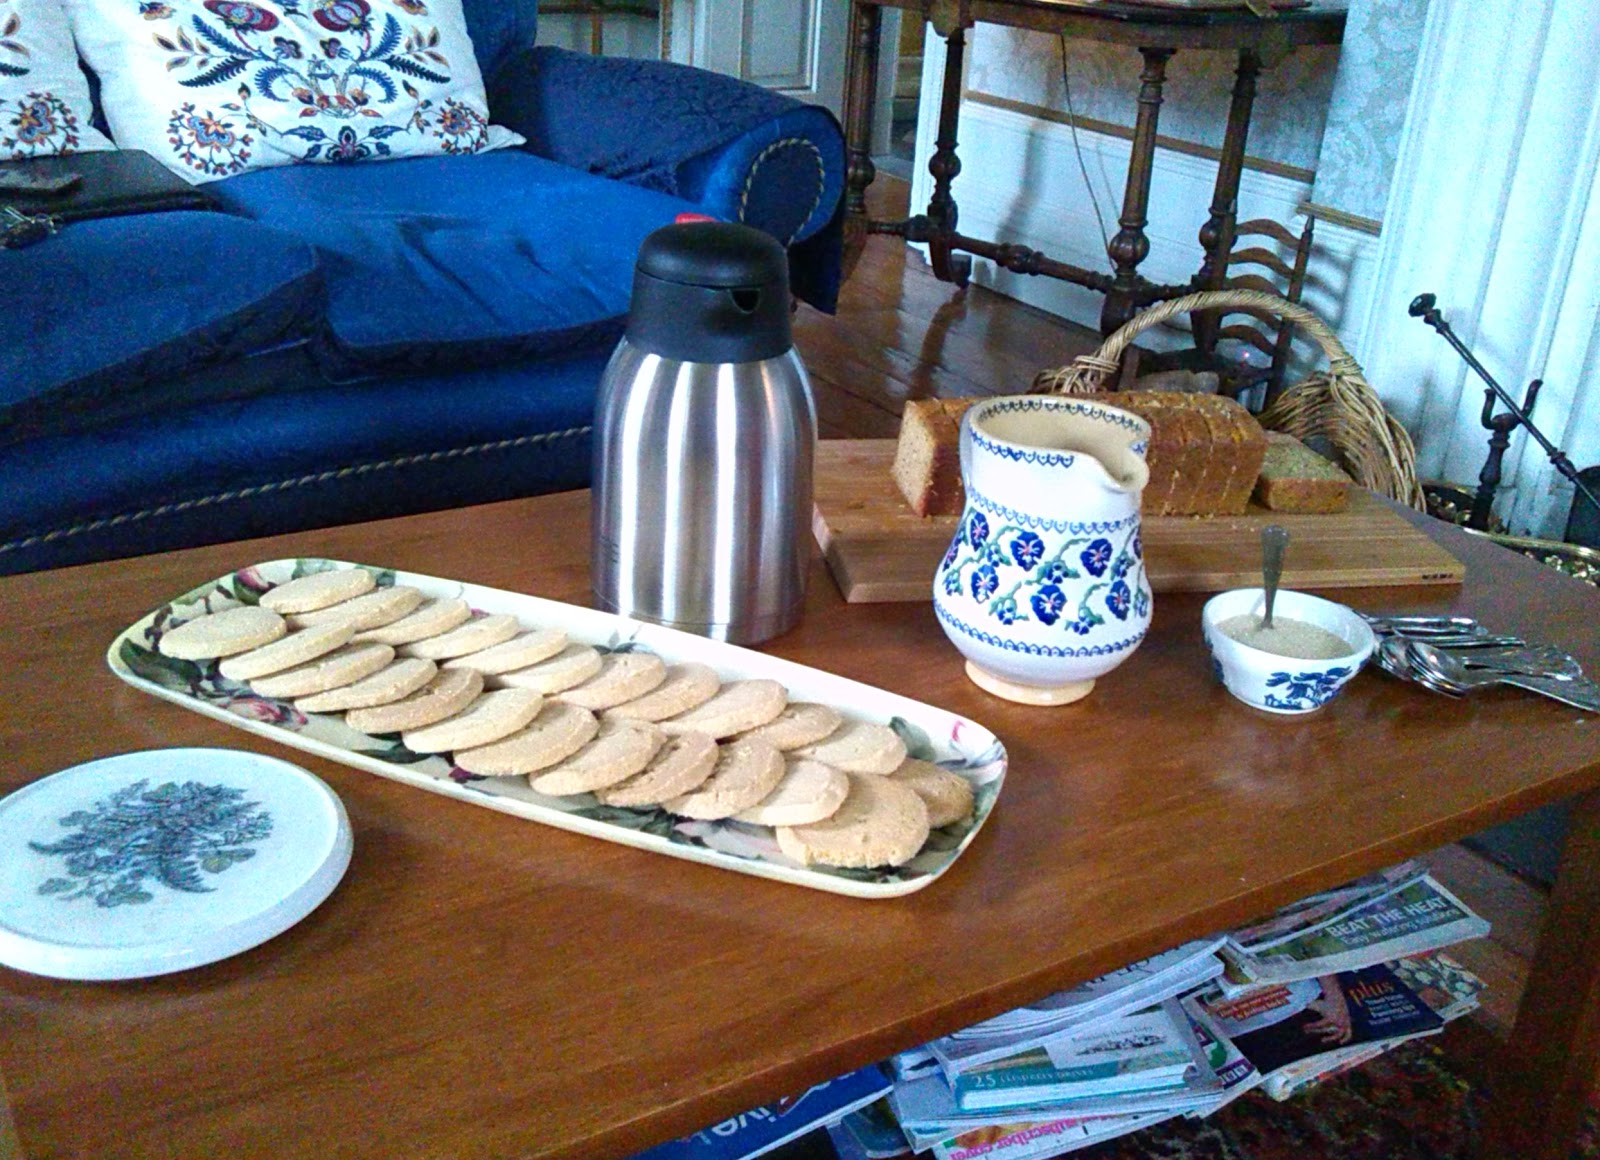 Homemade shortbread biscuits and homemade cake. Tea & coffee